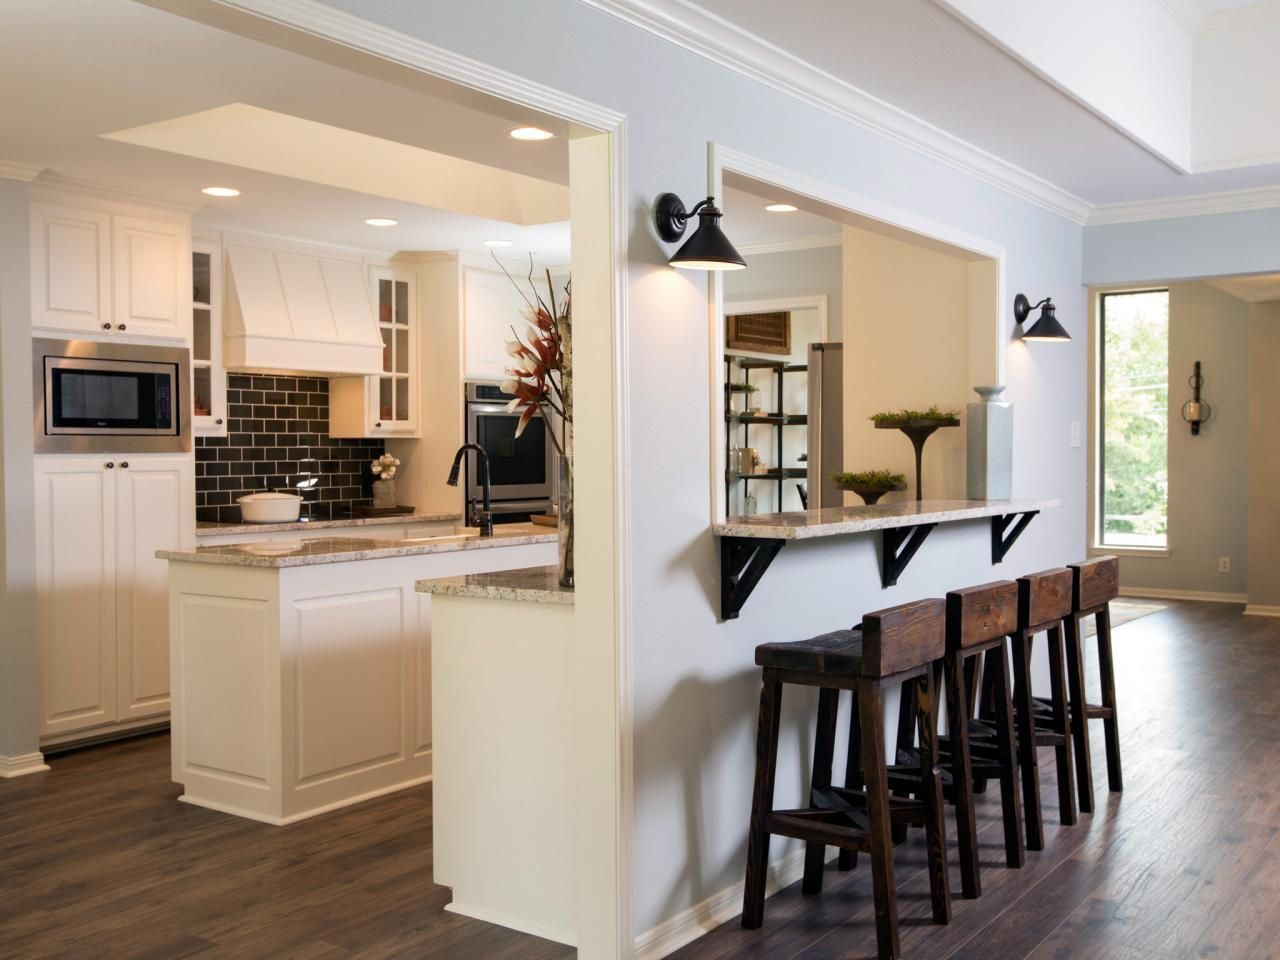 Bar height kitchen island  Fixer Upper A Rush to Renovate an us Ranch Home  Bar Breakfast